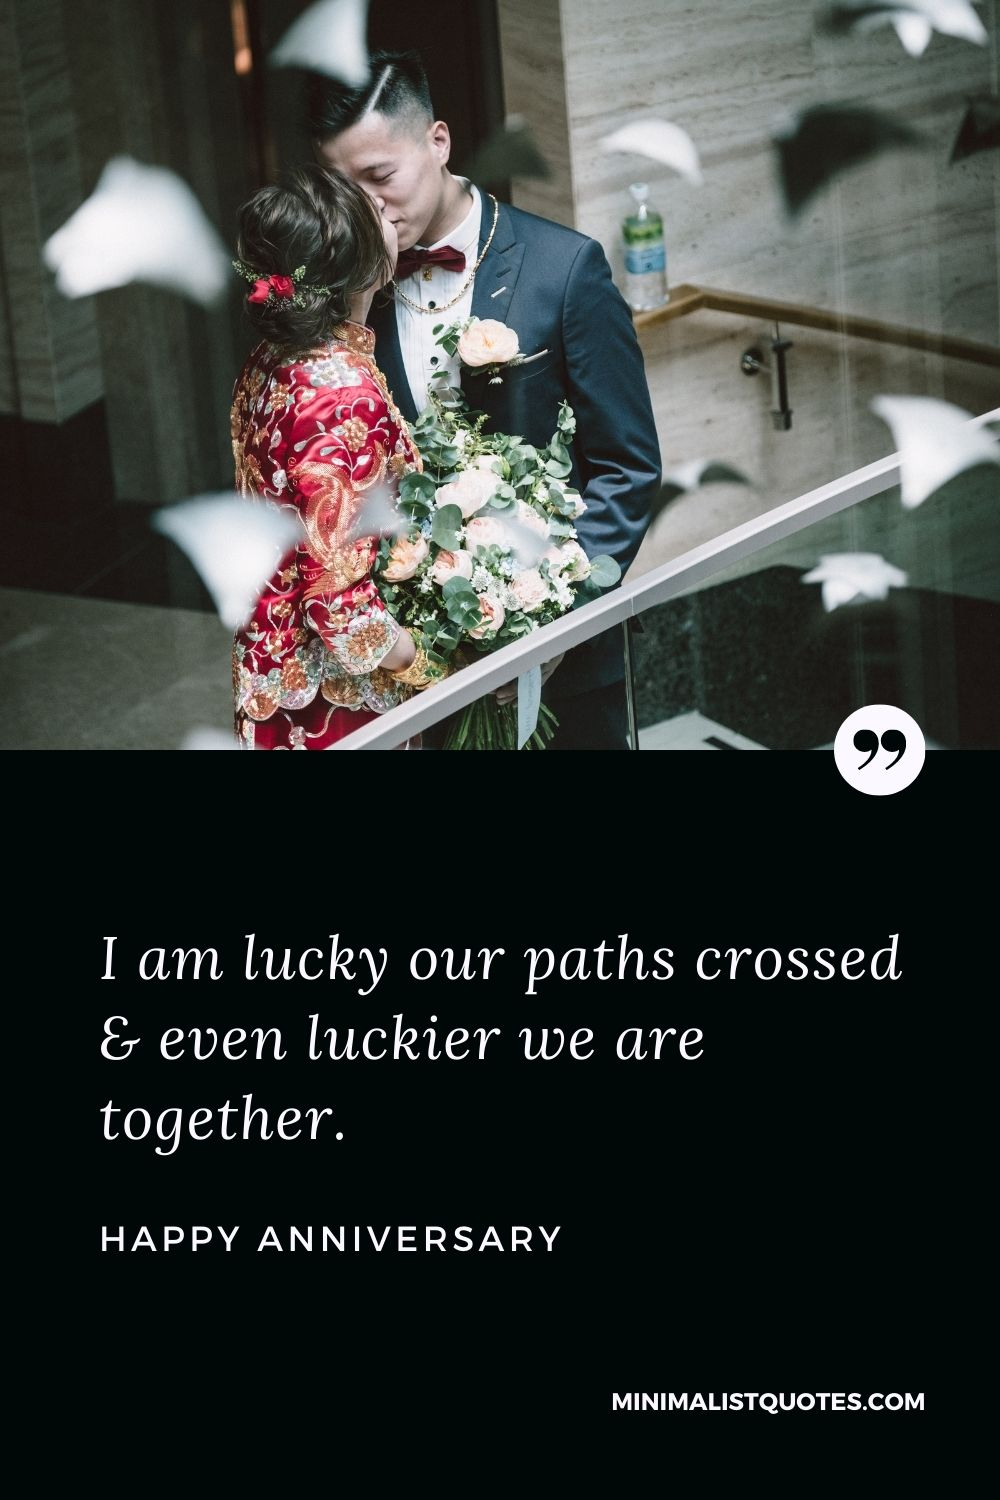 Happy Anniversary Wish - I am lucky our paths crossed & even luckier we are together.